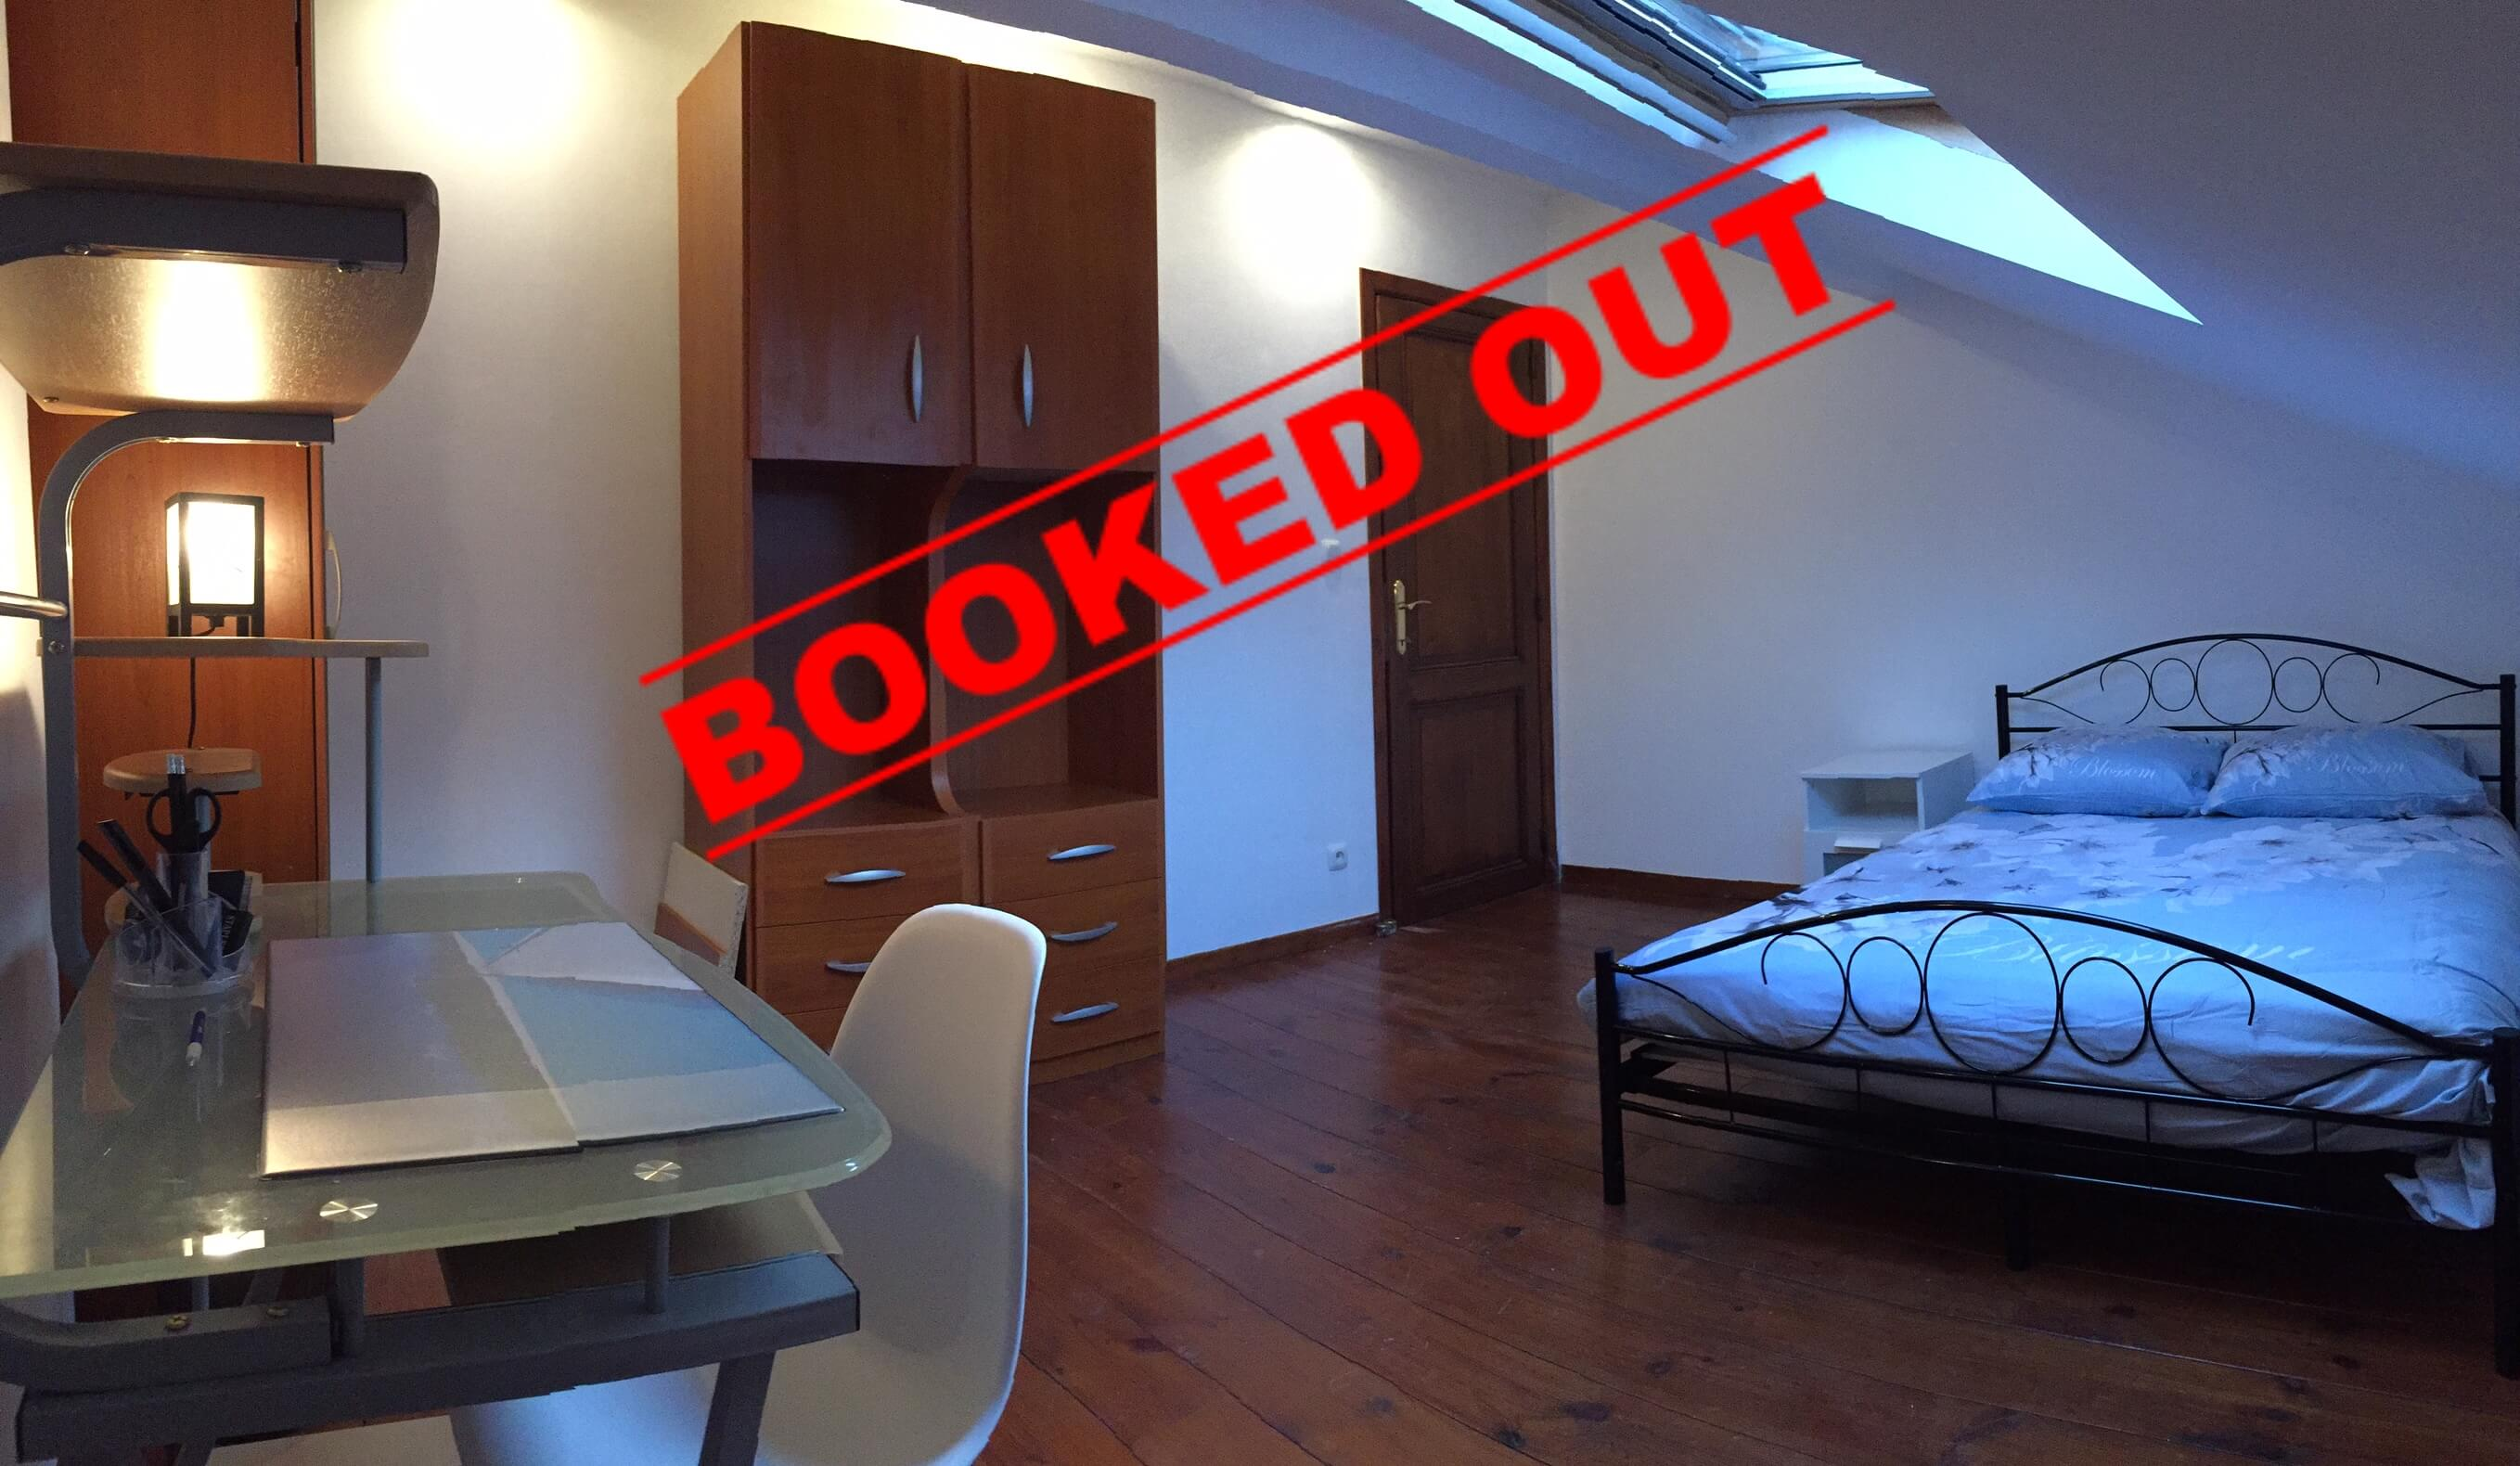 Accommodation: Room for erasmus students in Liège in residence 2